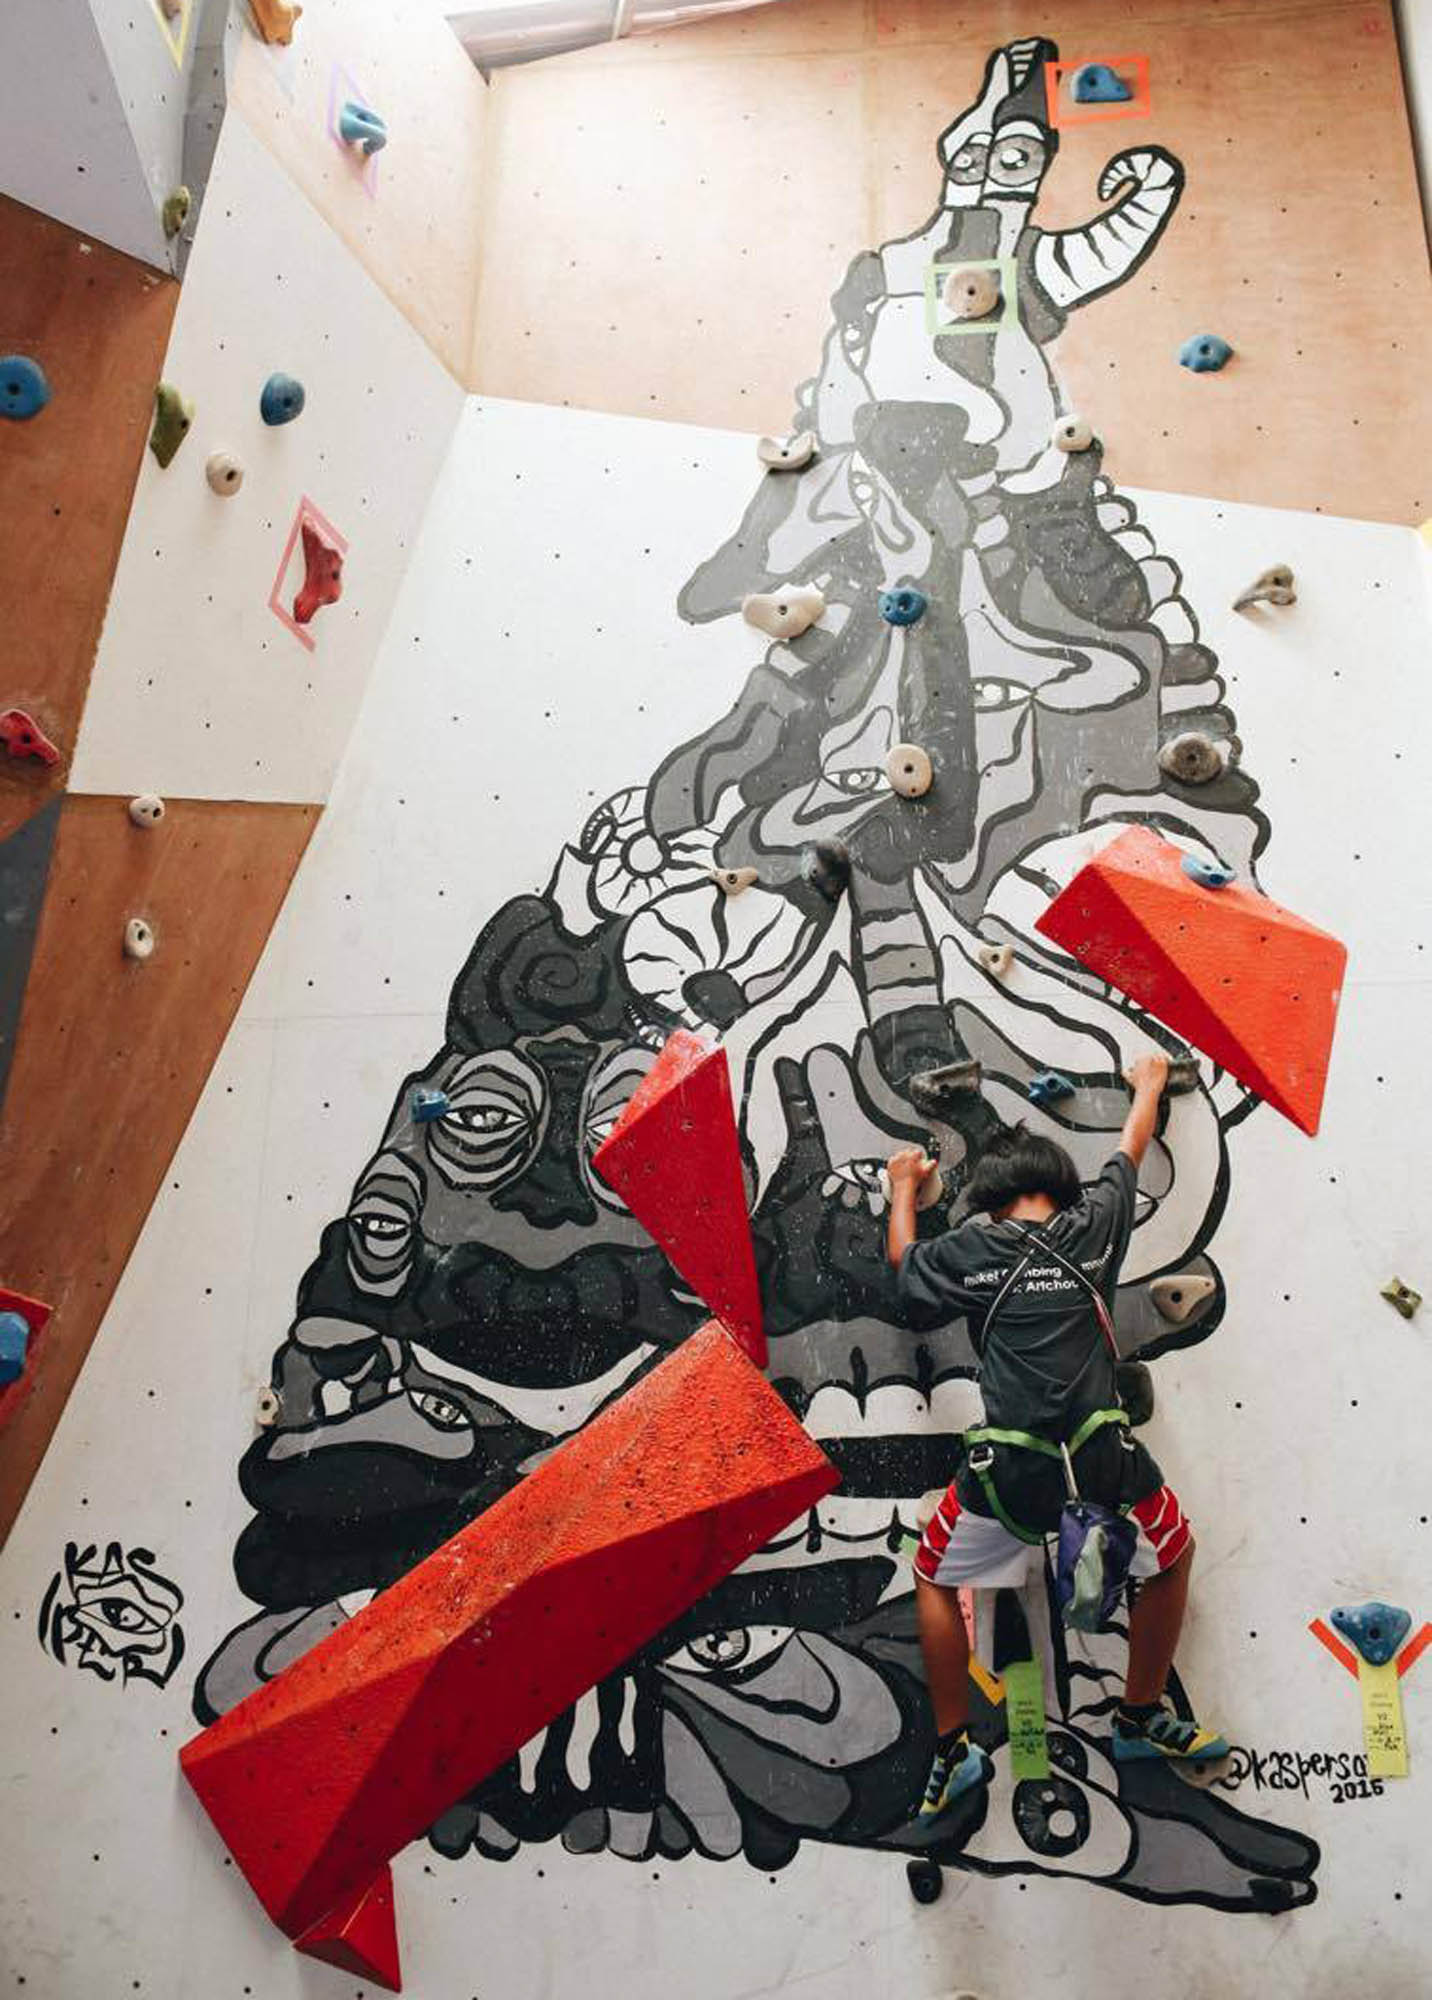 Rock Climbing mural painted at the Art-c-House in Phuket Thailand